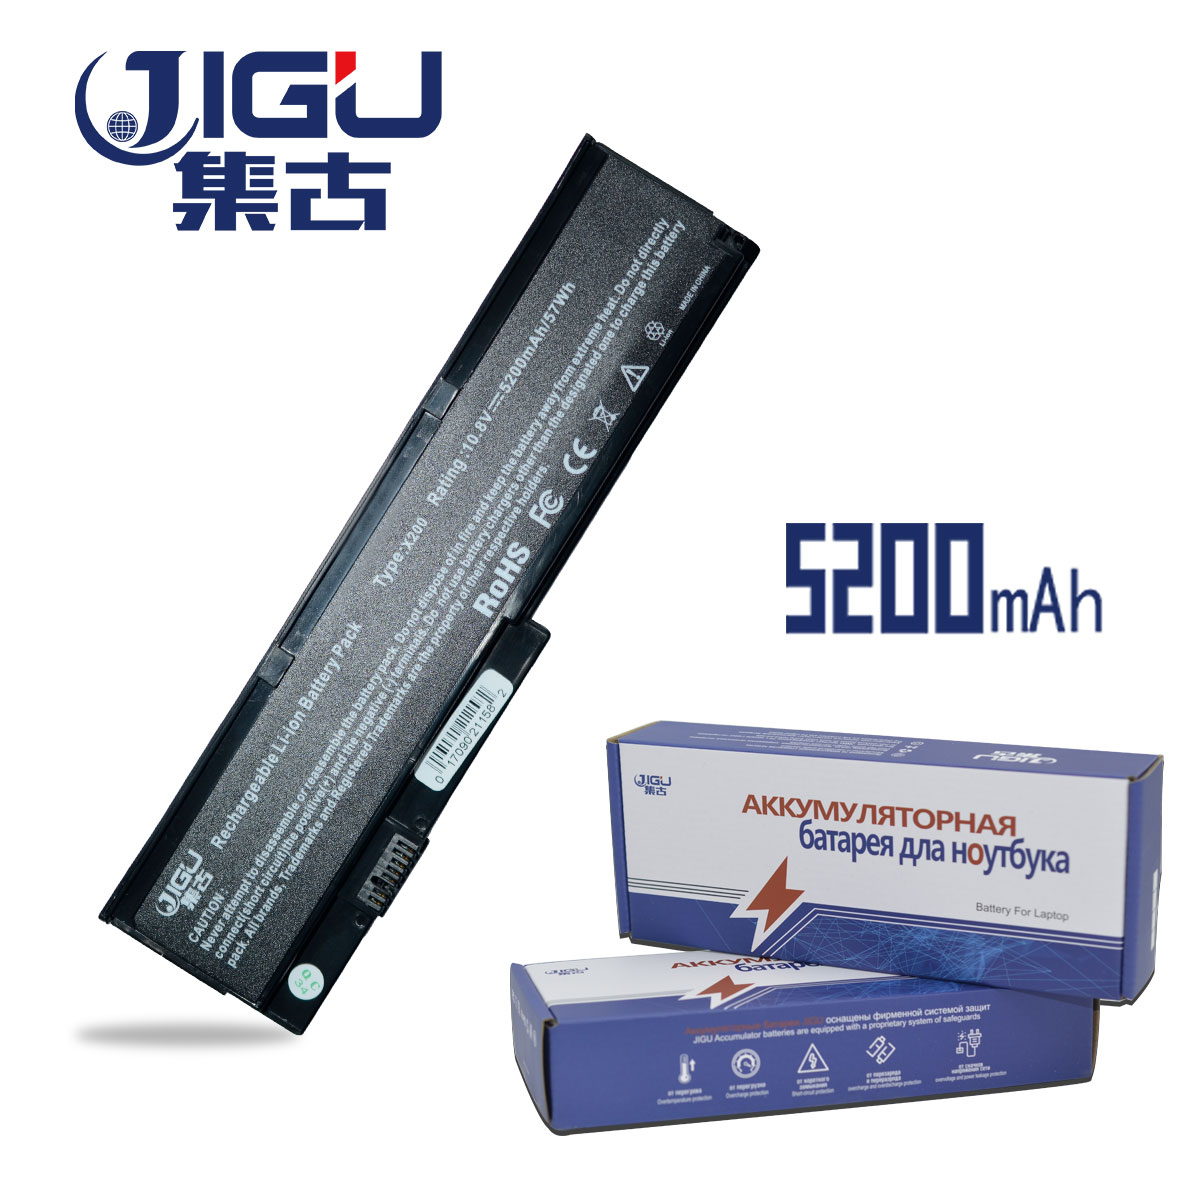 JIGU Laptop Battery For Lenovo ThinkPad X200 X200s X201 X201i X201s 42T4834 42T4835 43R9254 ASM 42T4537 FRU 42T4536 FRU 42T4538